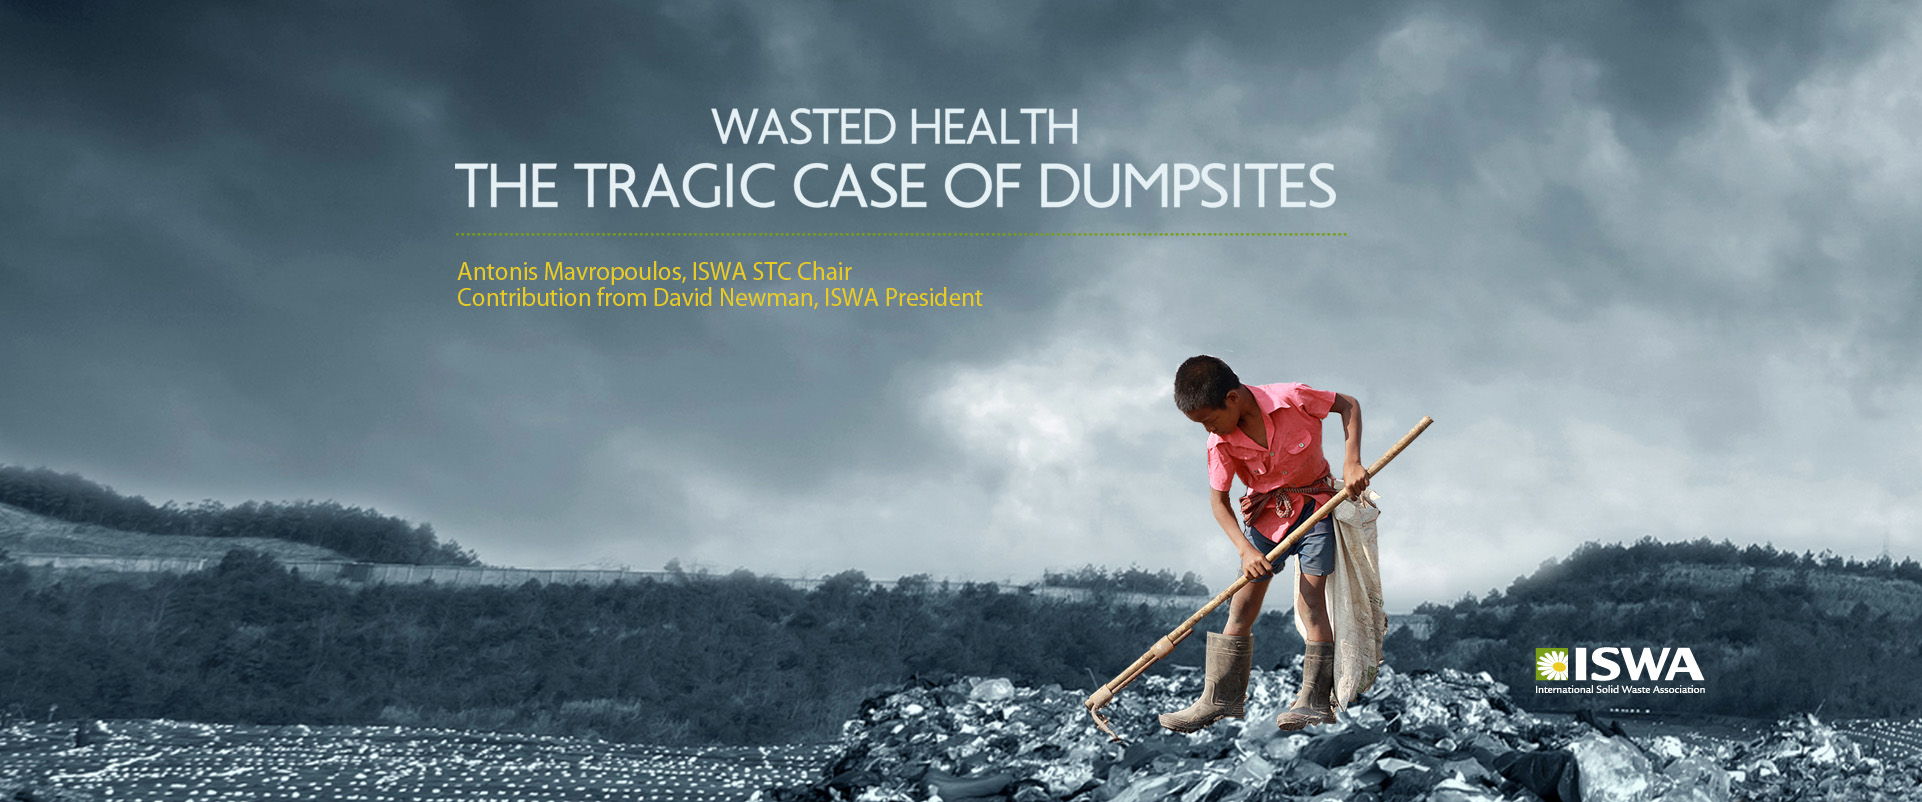 Wasted Health The Tragic Case Of Dumpsites